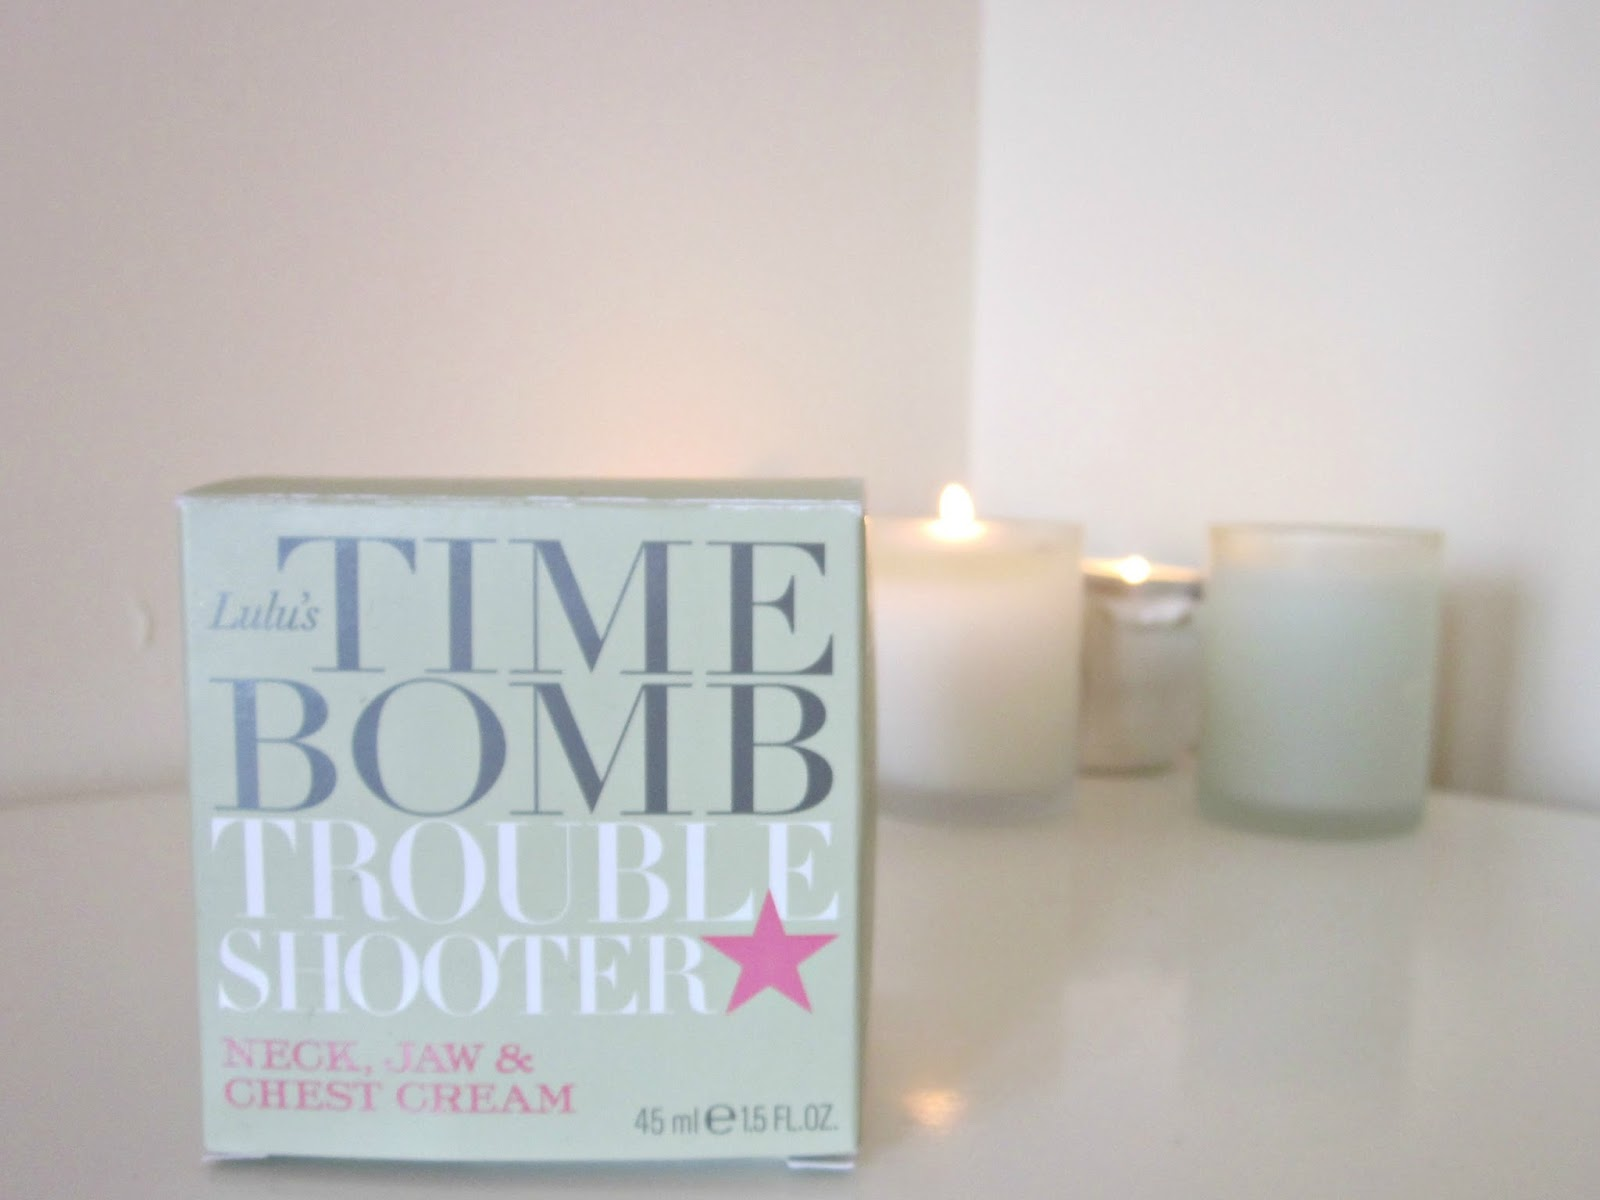 Lulu's Time Bomb Trouble Shooter review